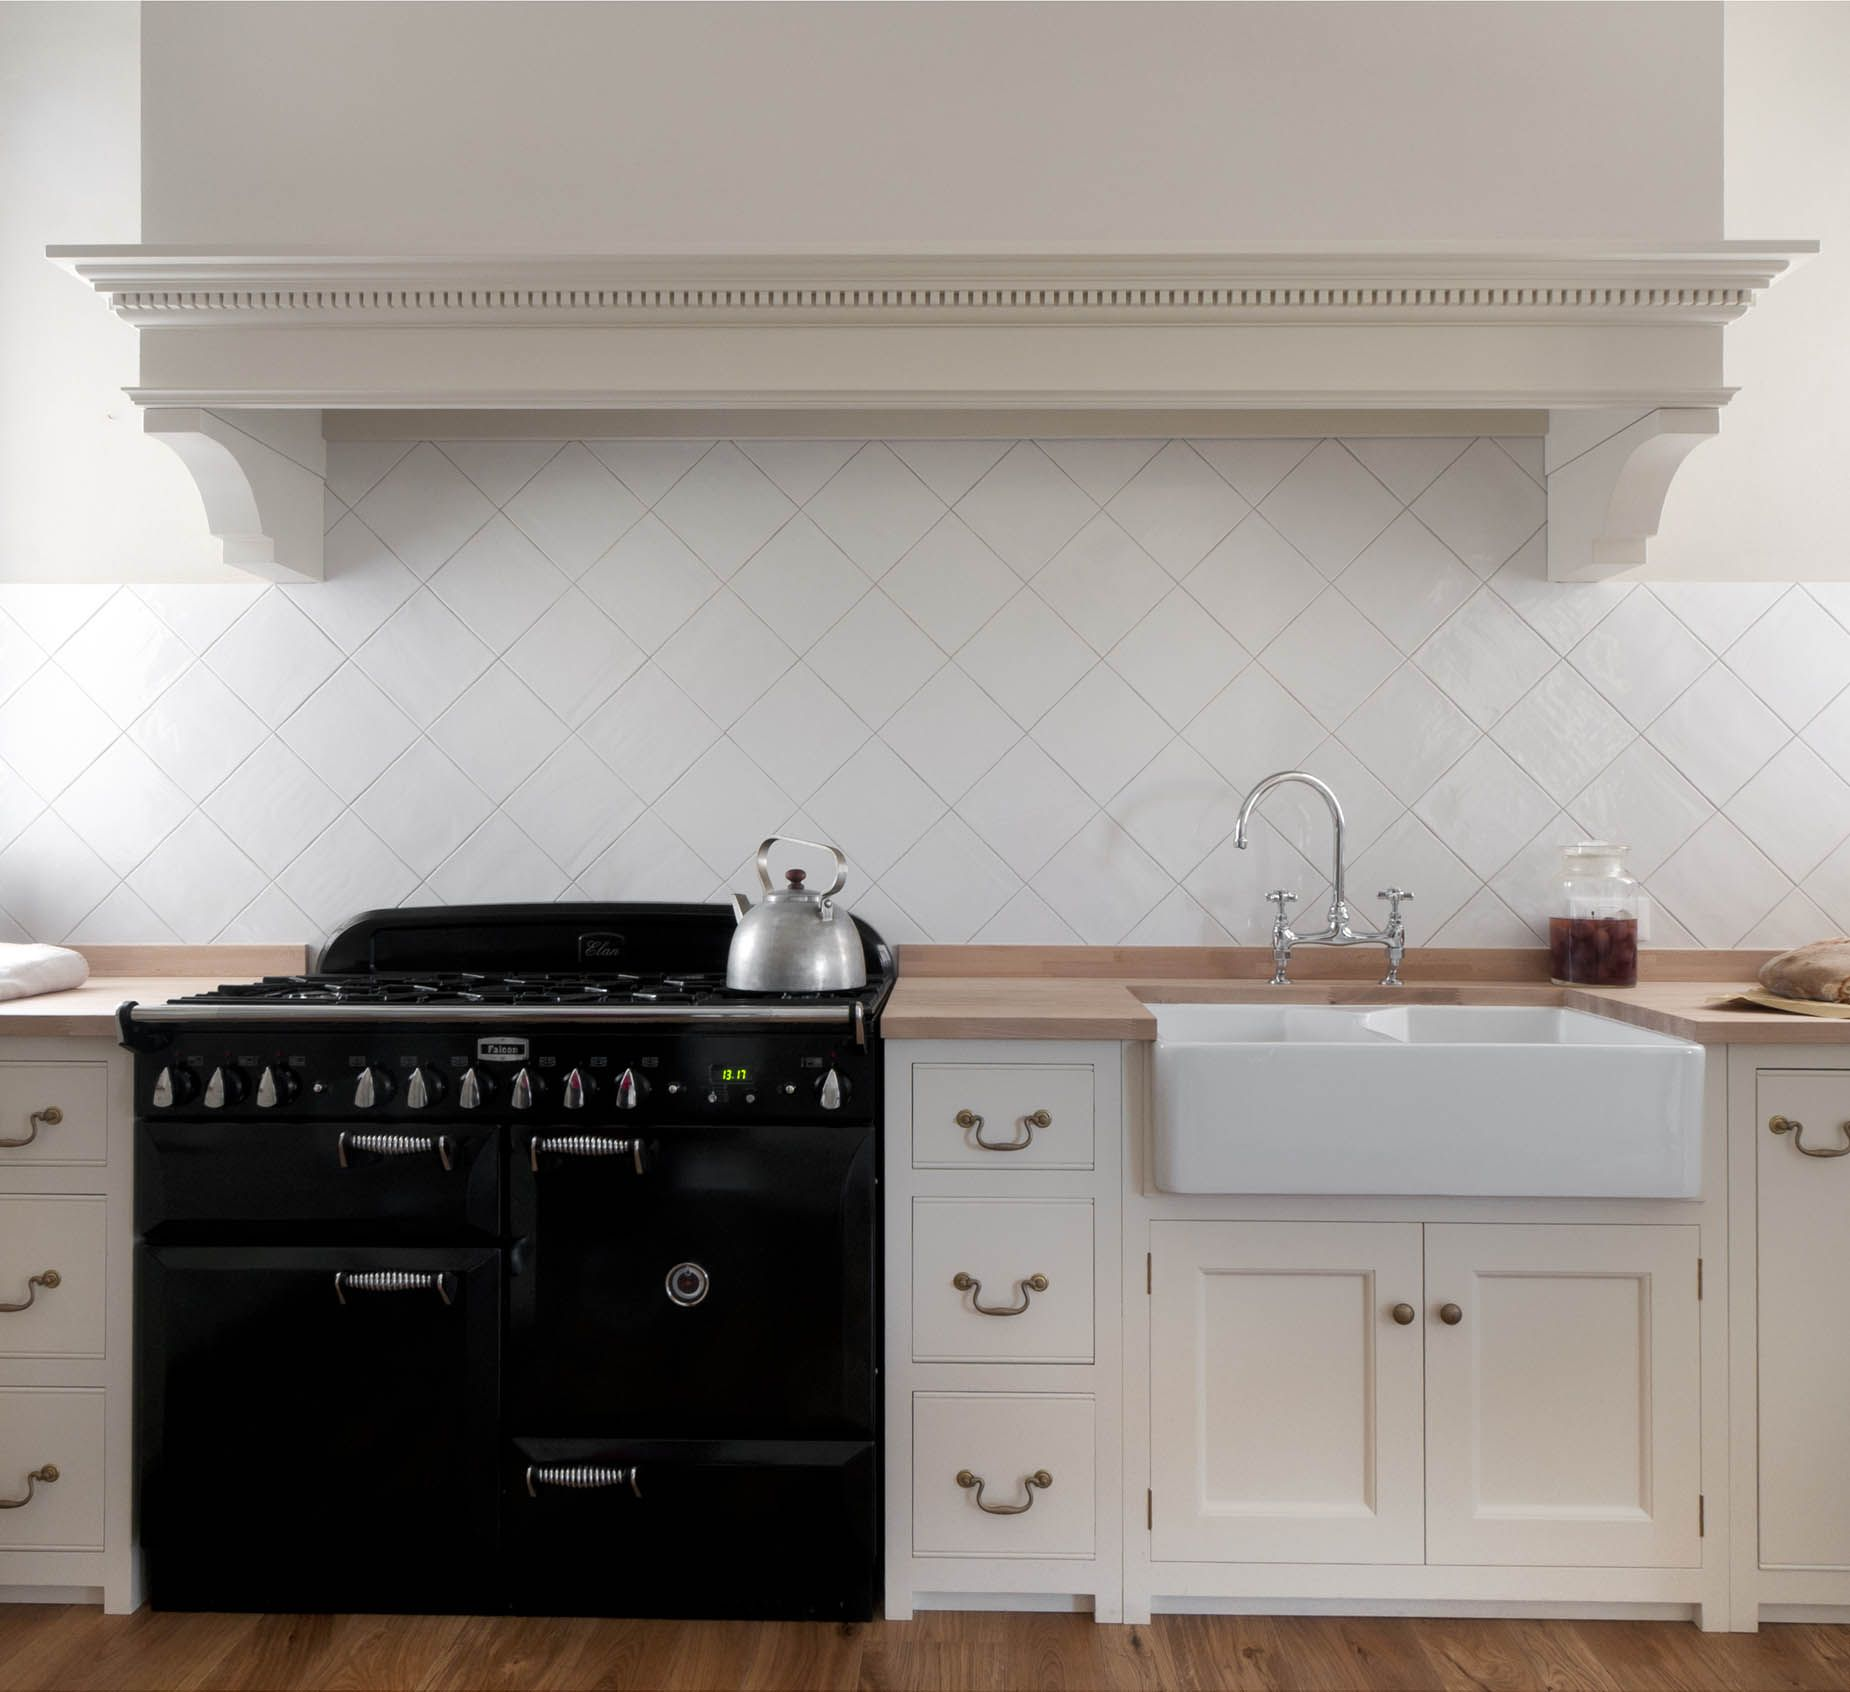 Isola Cucina In Inglese Free Monticello Kitchen By Homewood Bespoke La Classica